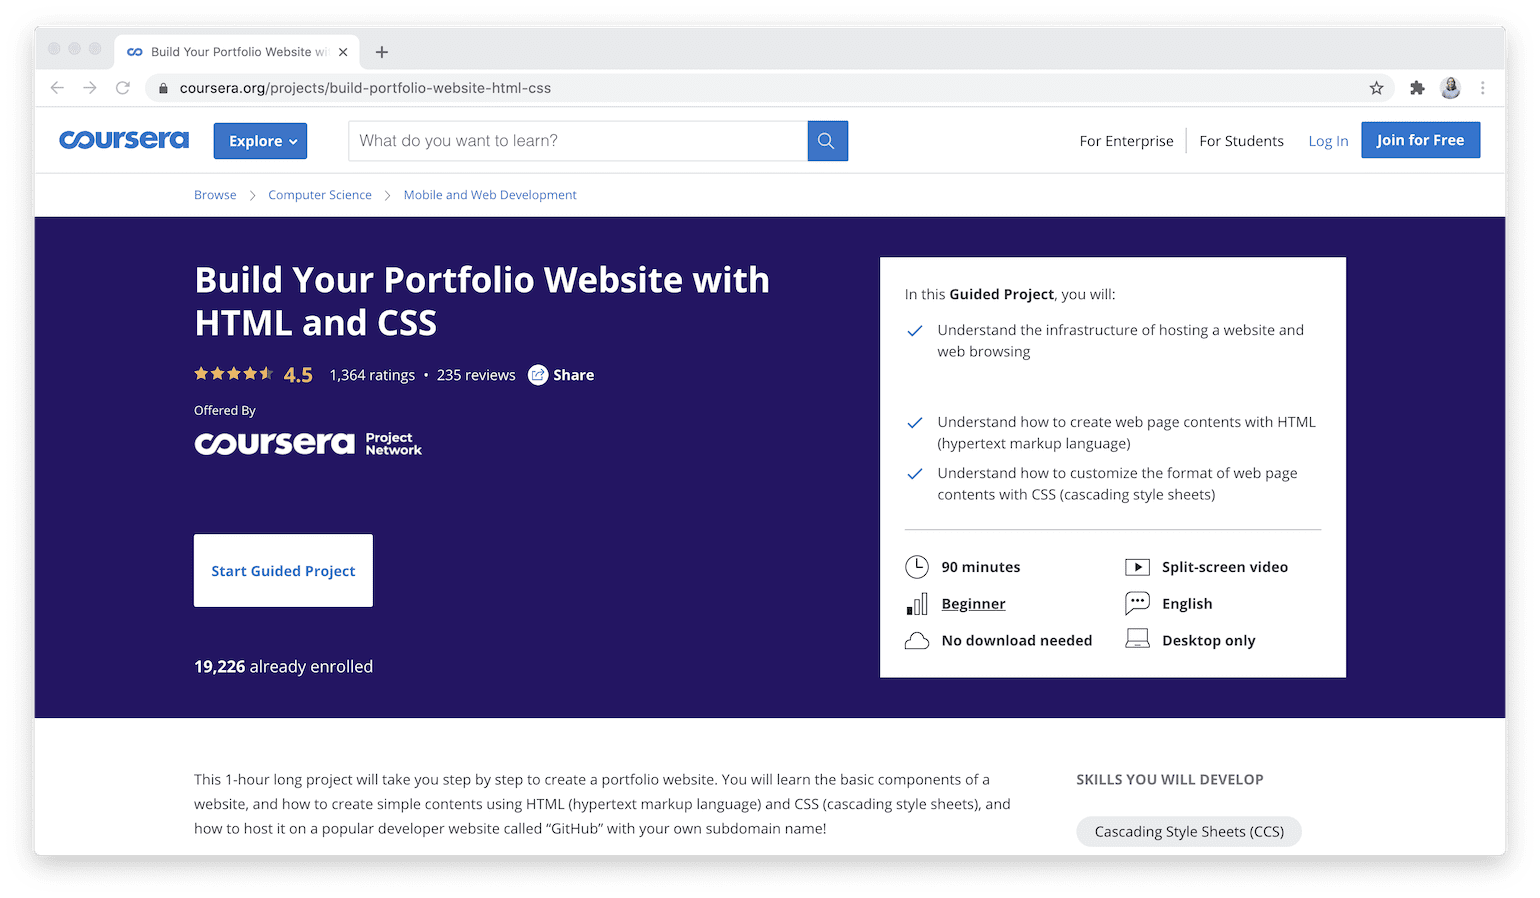 Build Your Portfolio Website with HTML and CSS - Coursera